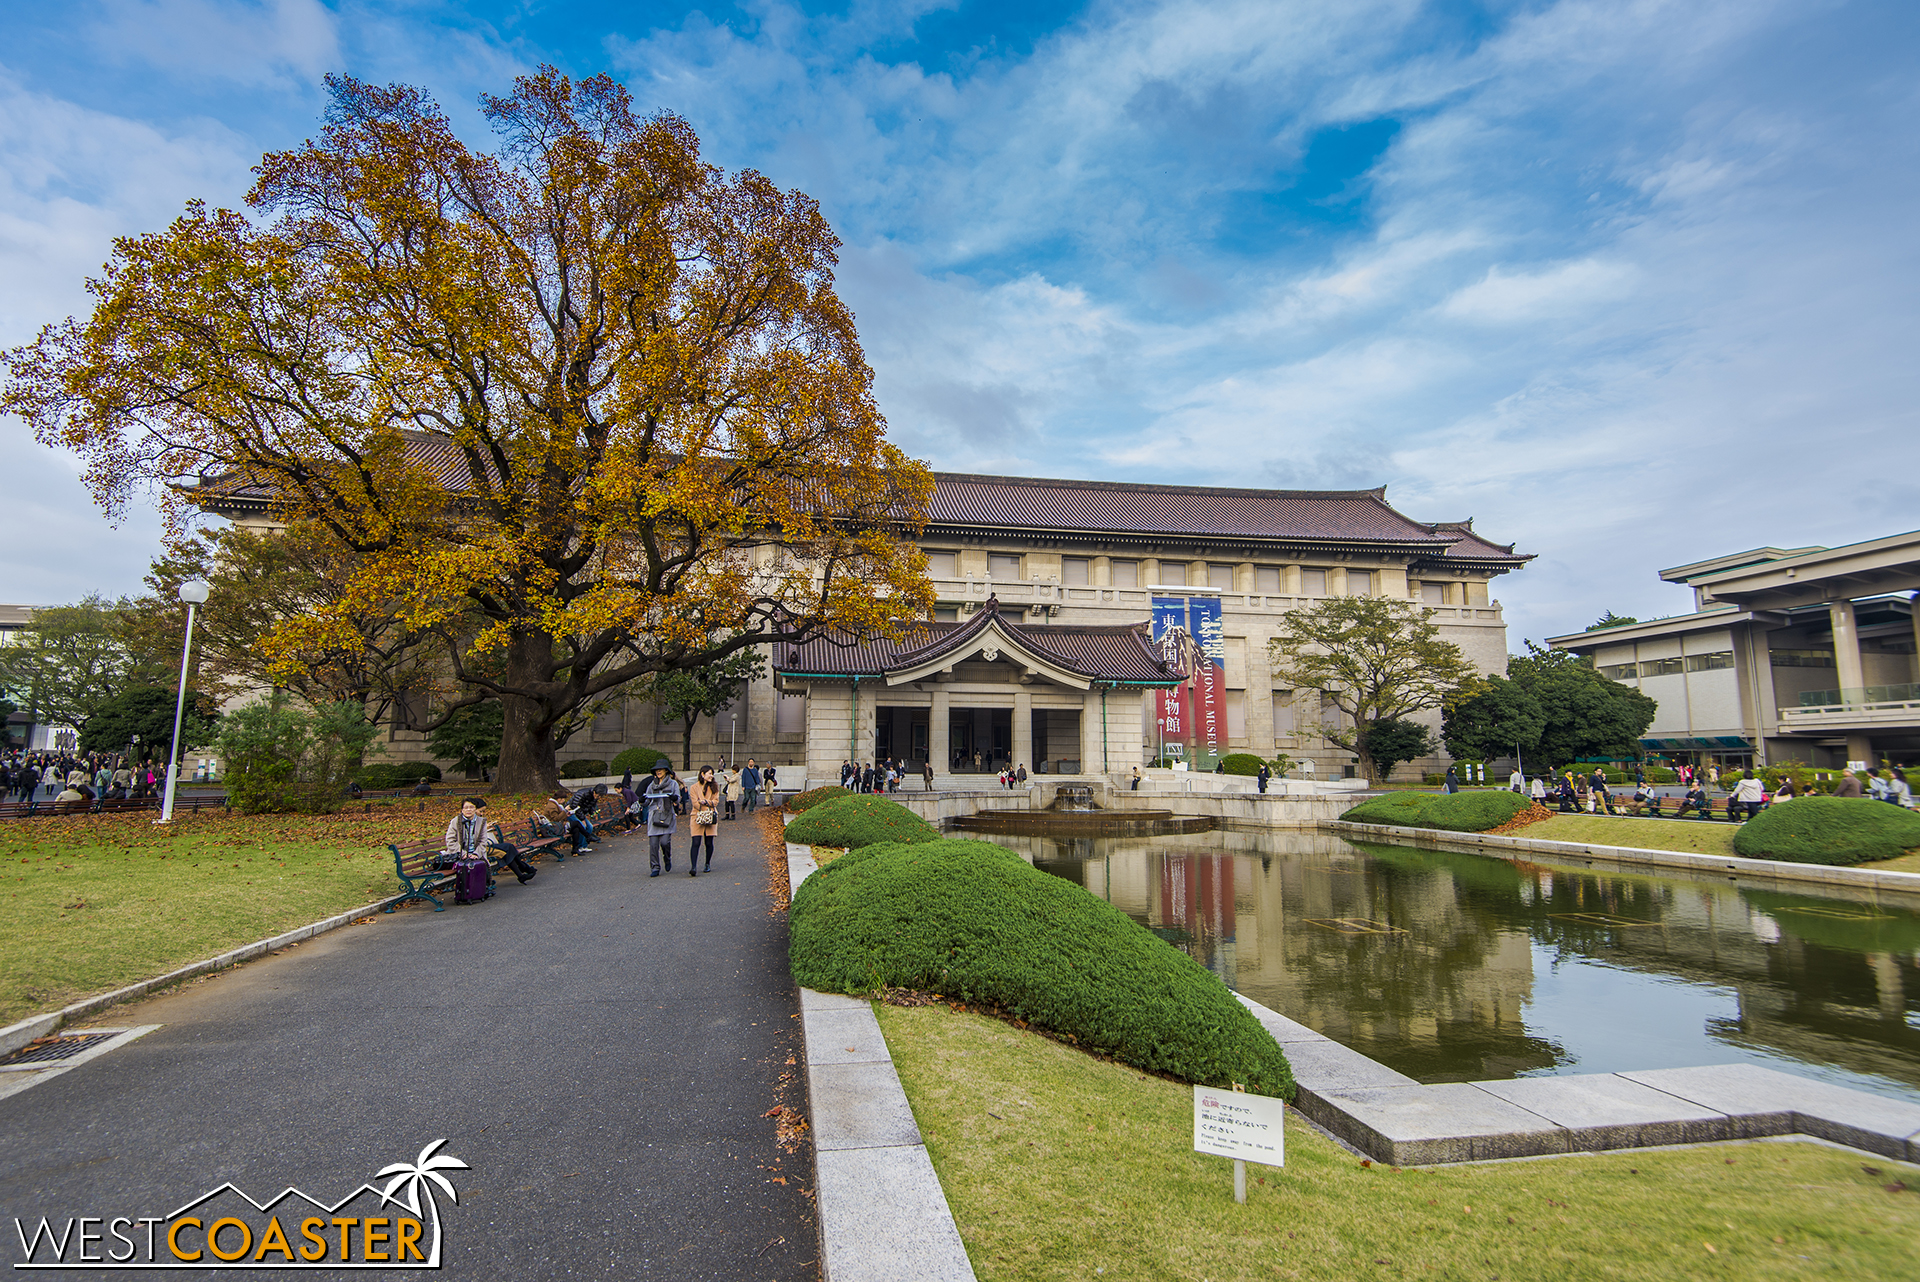 The Tokyo National Museum, in the Ueno museum complex, houses a treasure trove of culture, history, and artifacts.